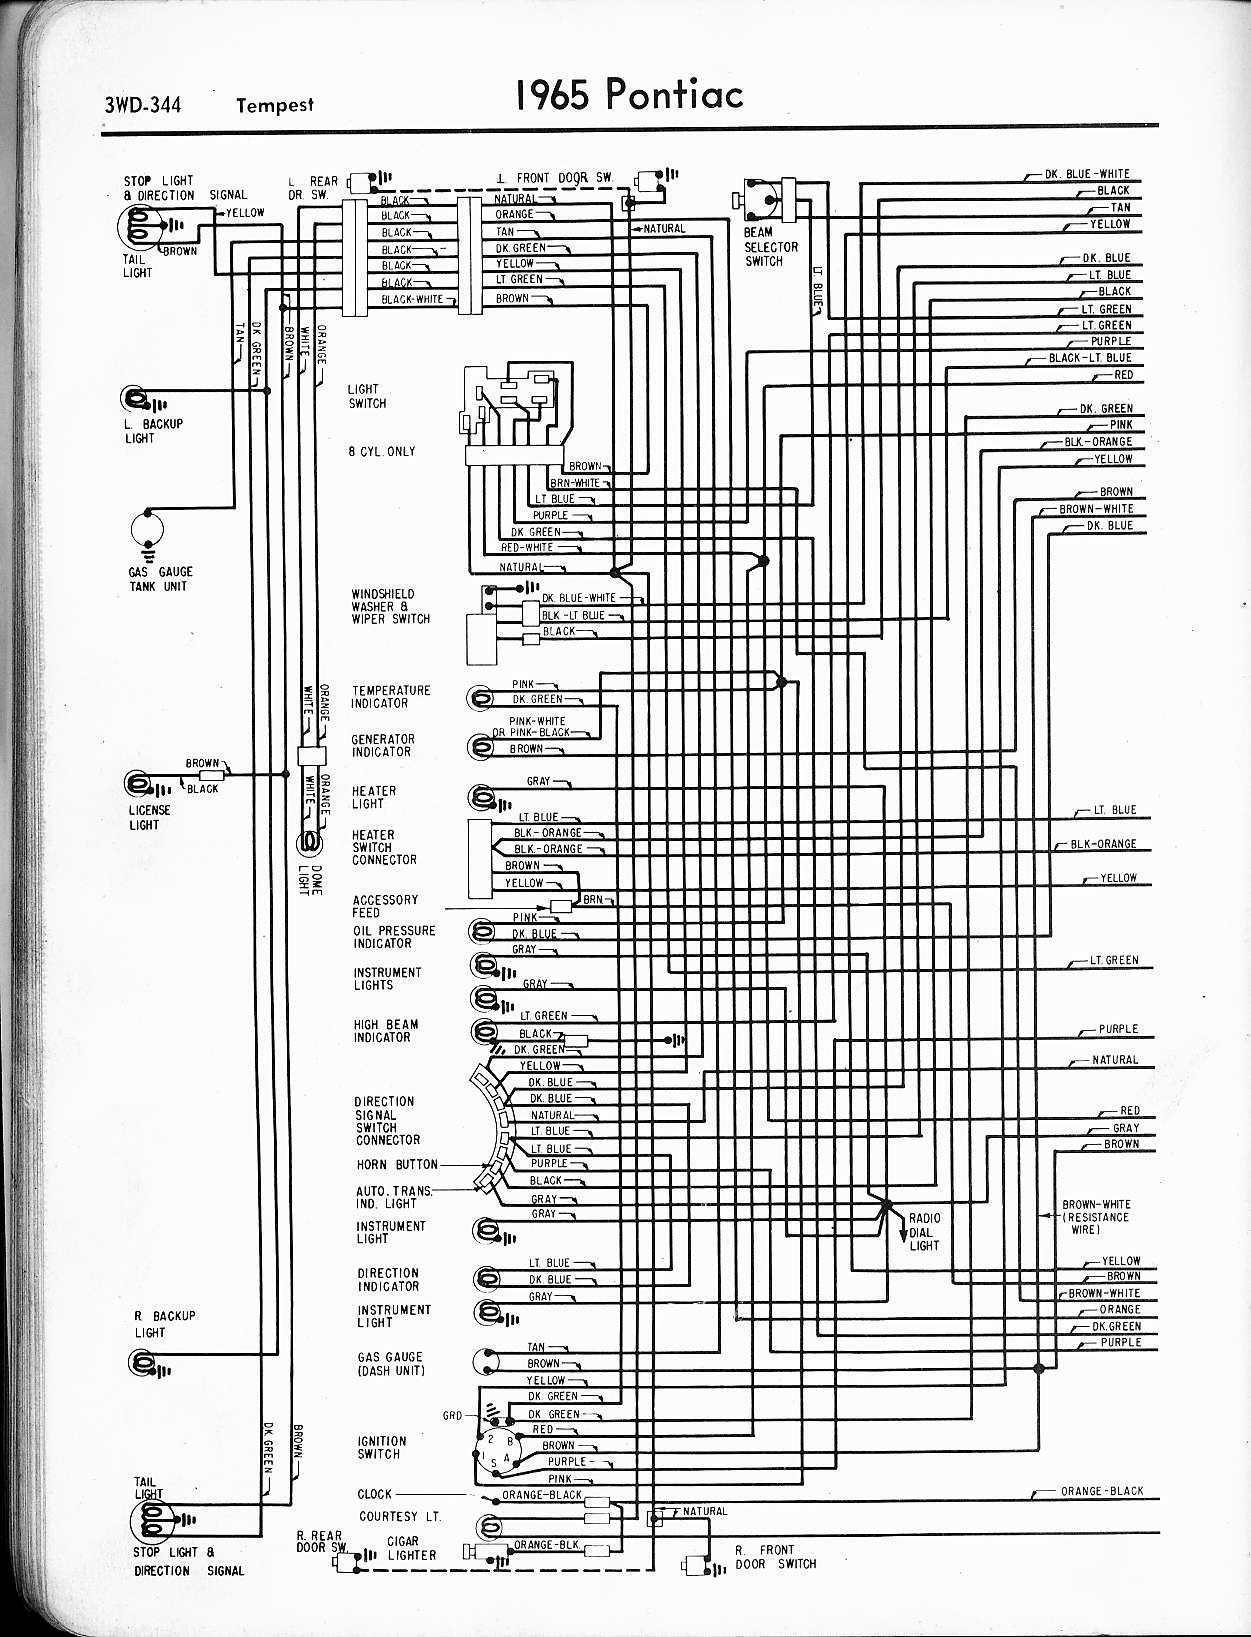 66 gto dash wiring diagram - wiring diagram pictures 66 telecaster wiring diagram seymour duncan build